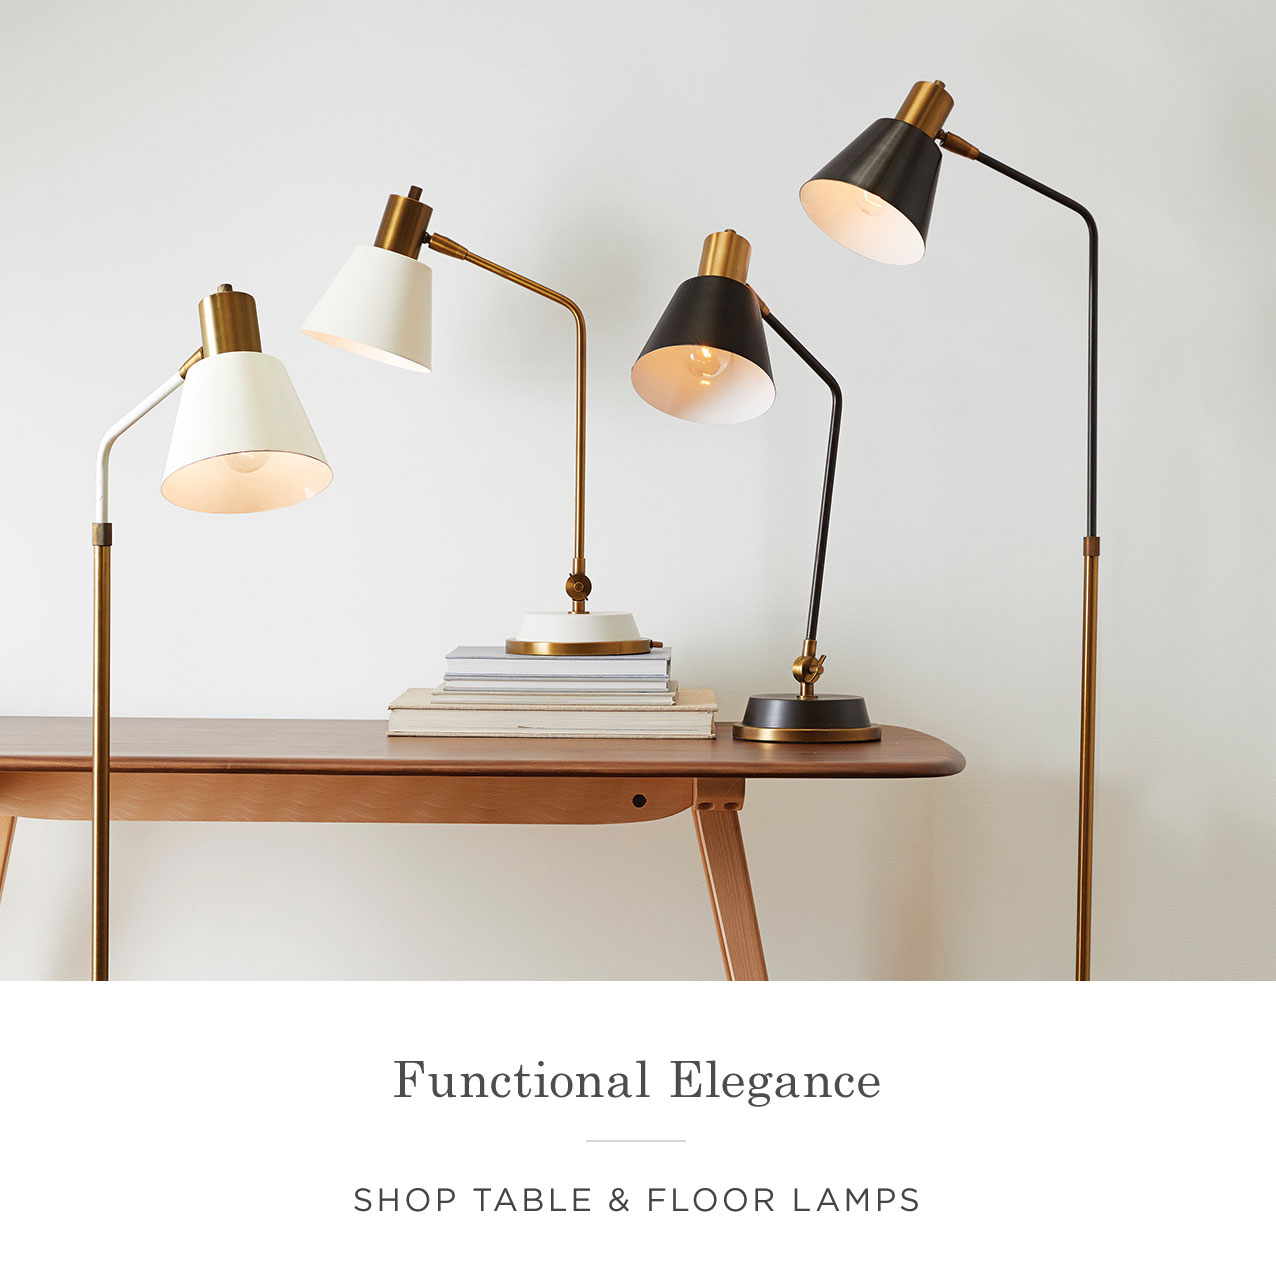 Shop Table & Floor Lamps